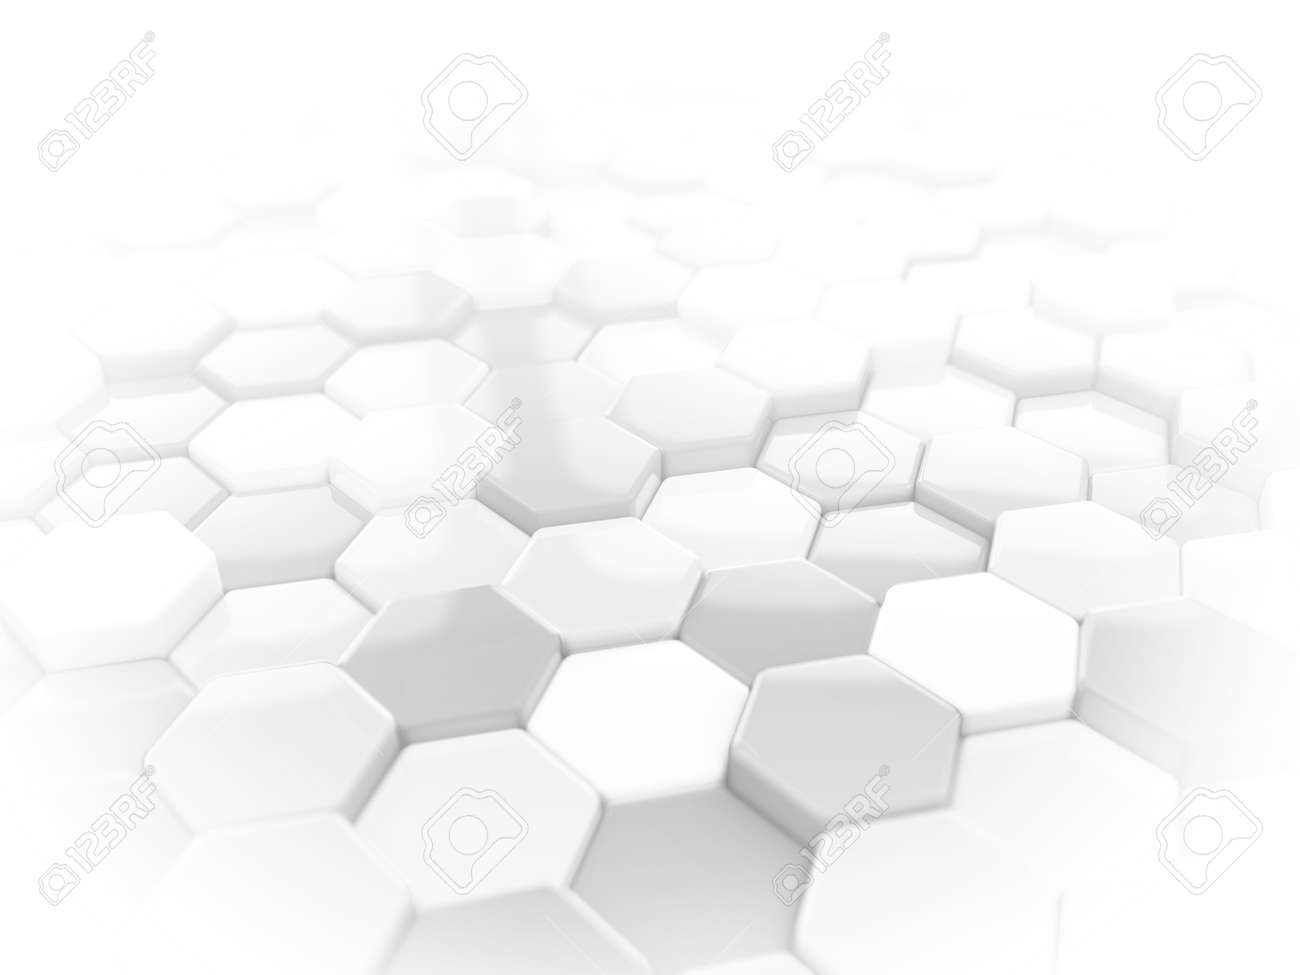 Abstract white 3D render hexagonal geometric structure background - 45148583